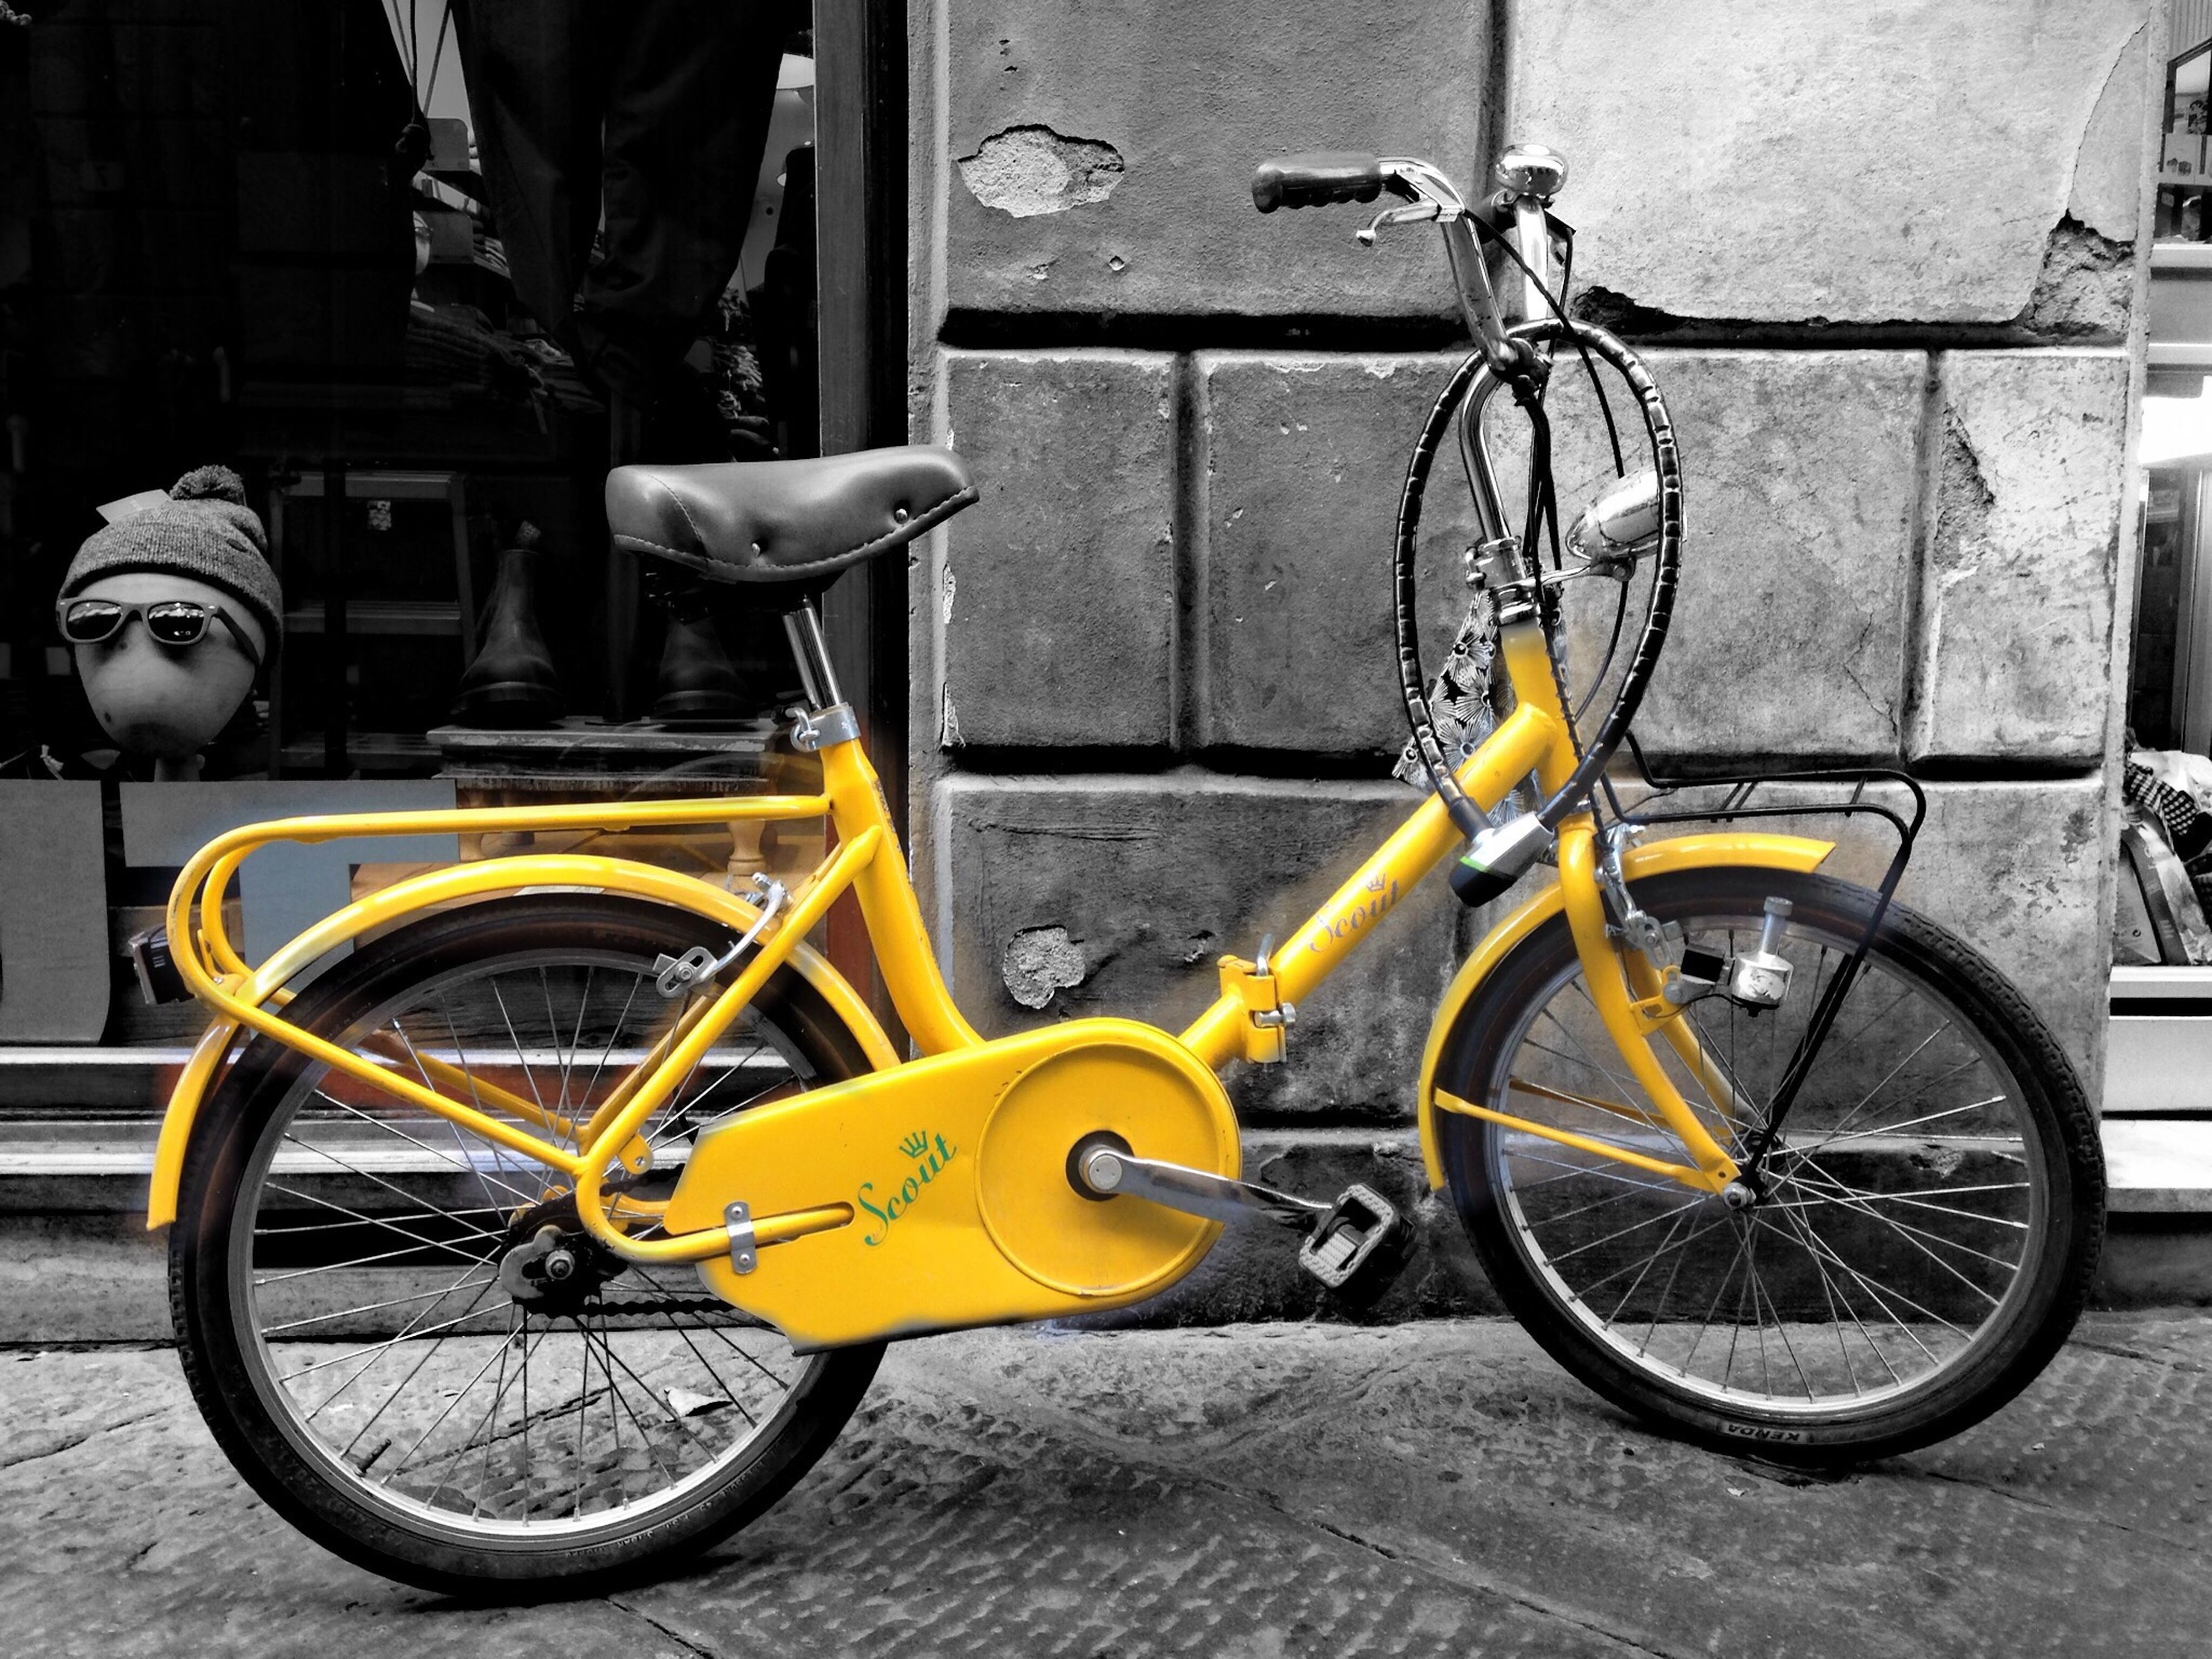 bicycle, transportation, mode of transport, land vehicle, stationary, parked, parking, yellow, street, cycle, cycling, riding, wheel, travel, side view, leaning, outdoors, motorcycle